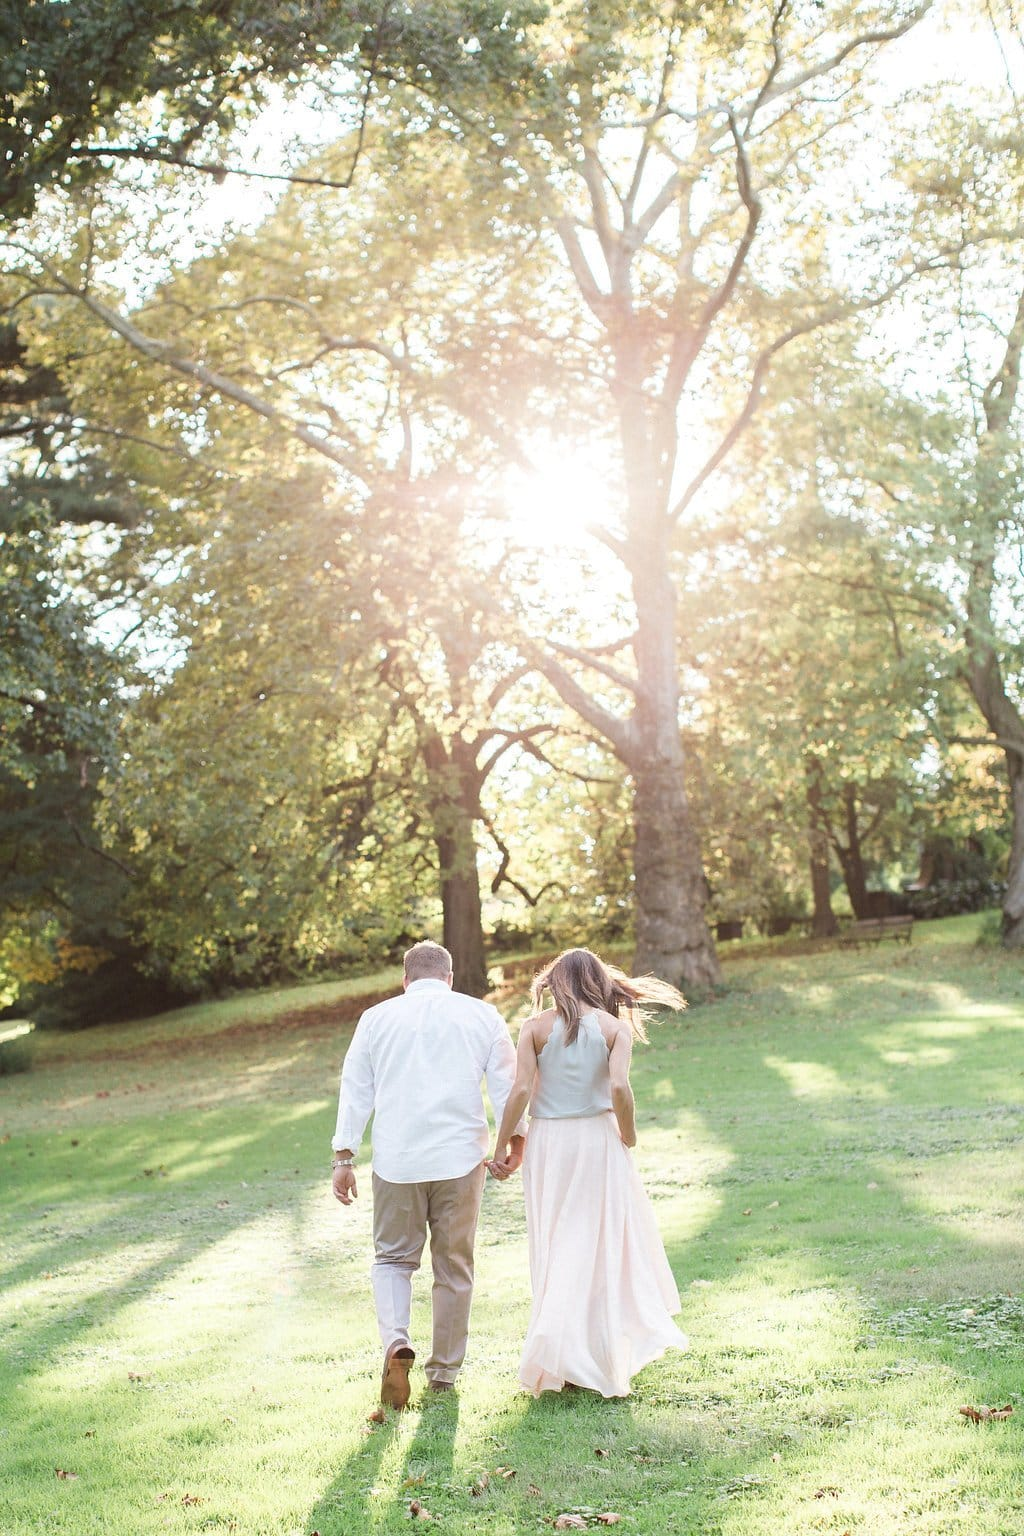 Couple walking together away from the camera holding hands